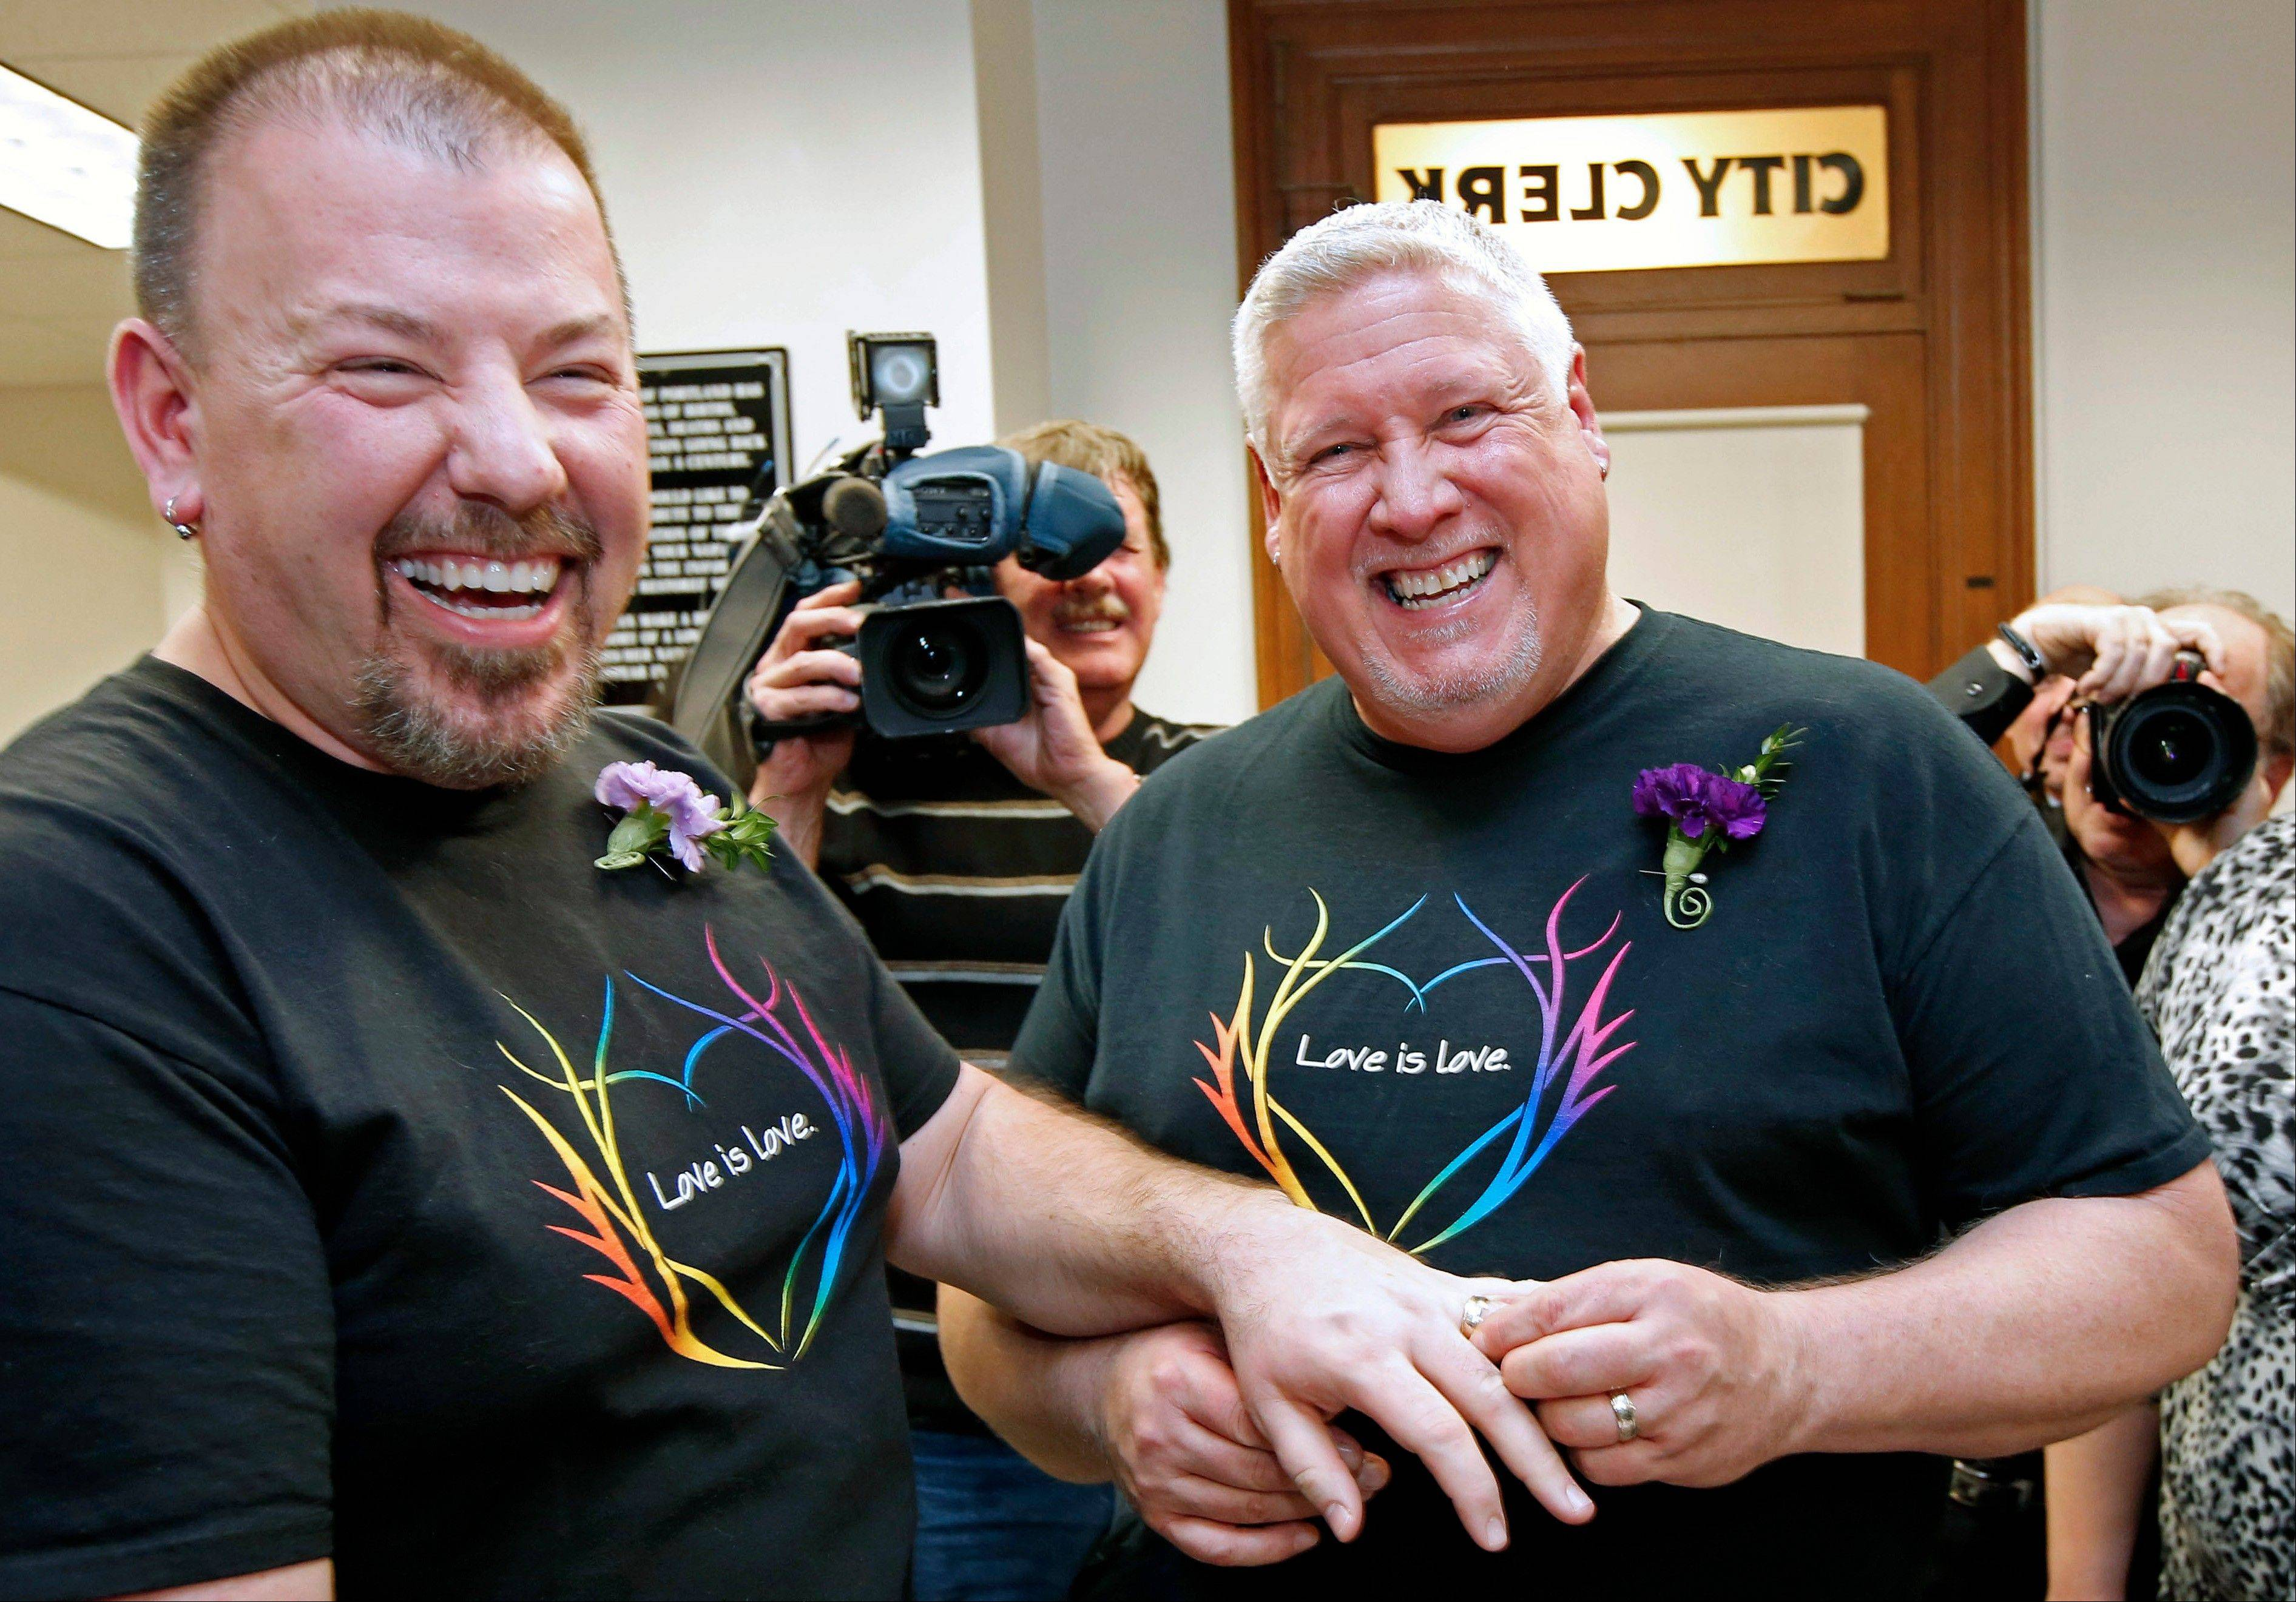 Steven Bridges, left, receives a wedding ring from Michael Snell, early Saturday, Dec. 29, at city hall in Portland, Maine. Same-sex couples in Maine are now legally allowed to marry under a new law that went into effect at 12:01 a.m. on Saturday.